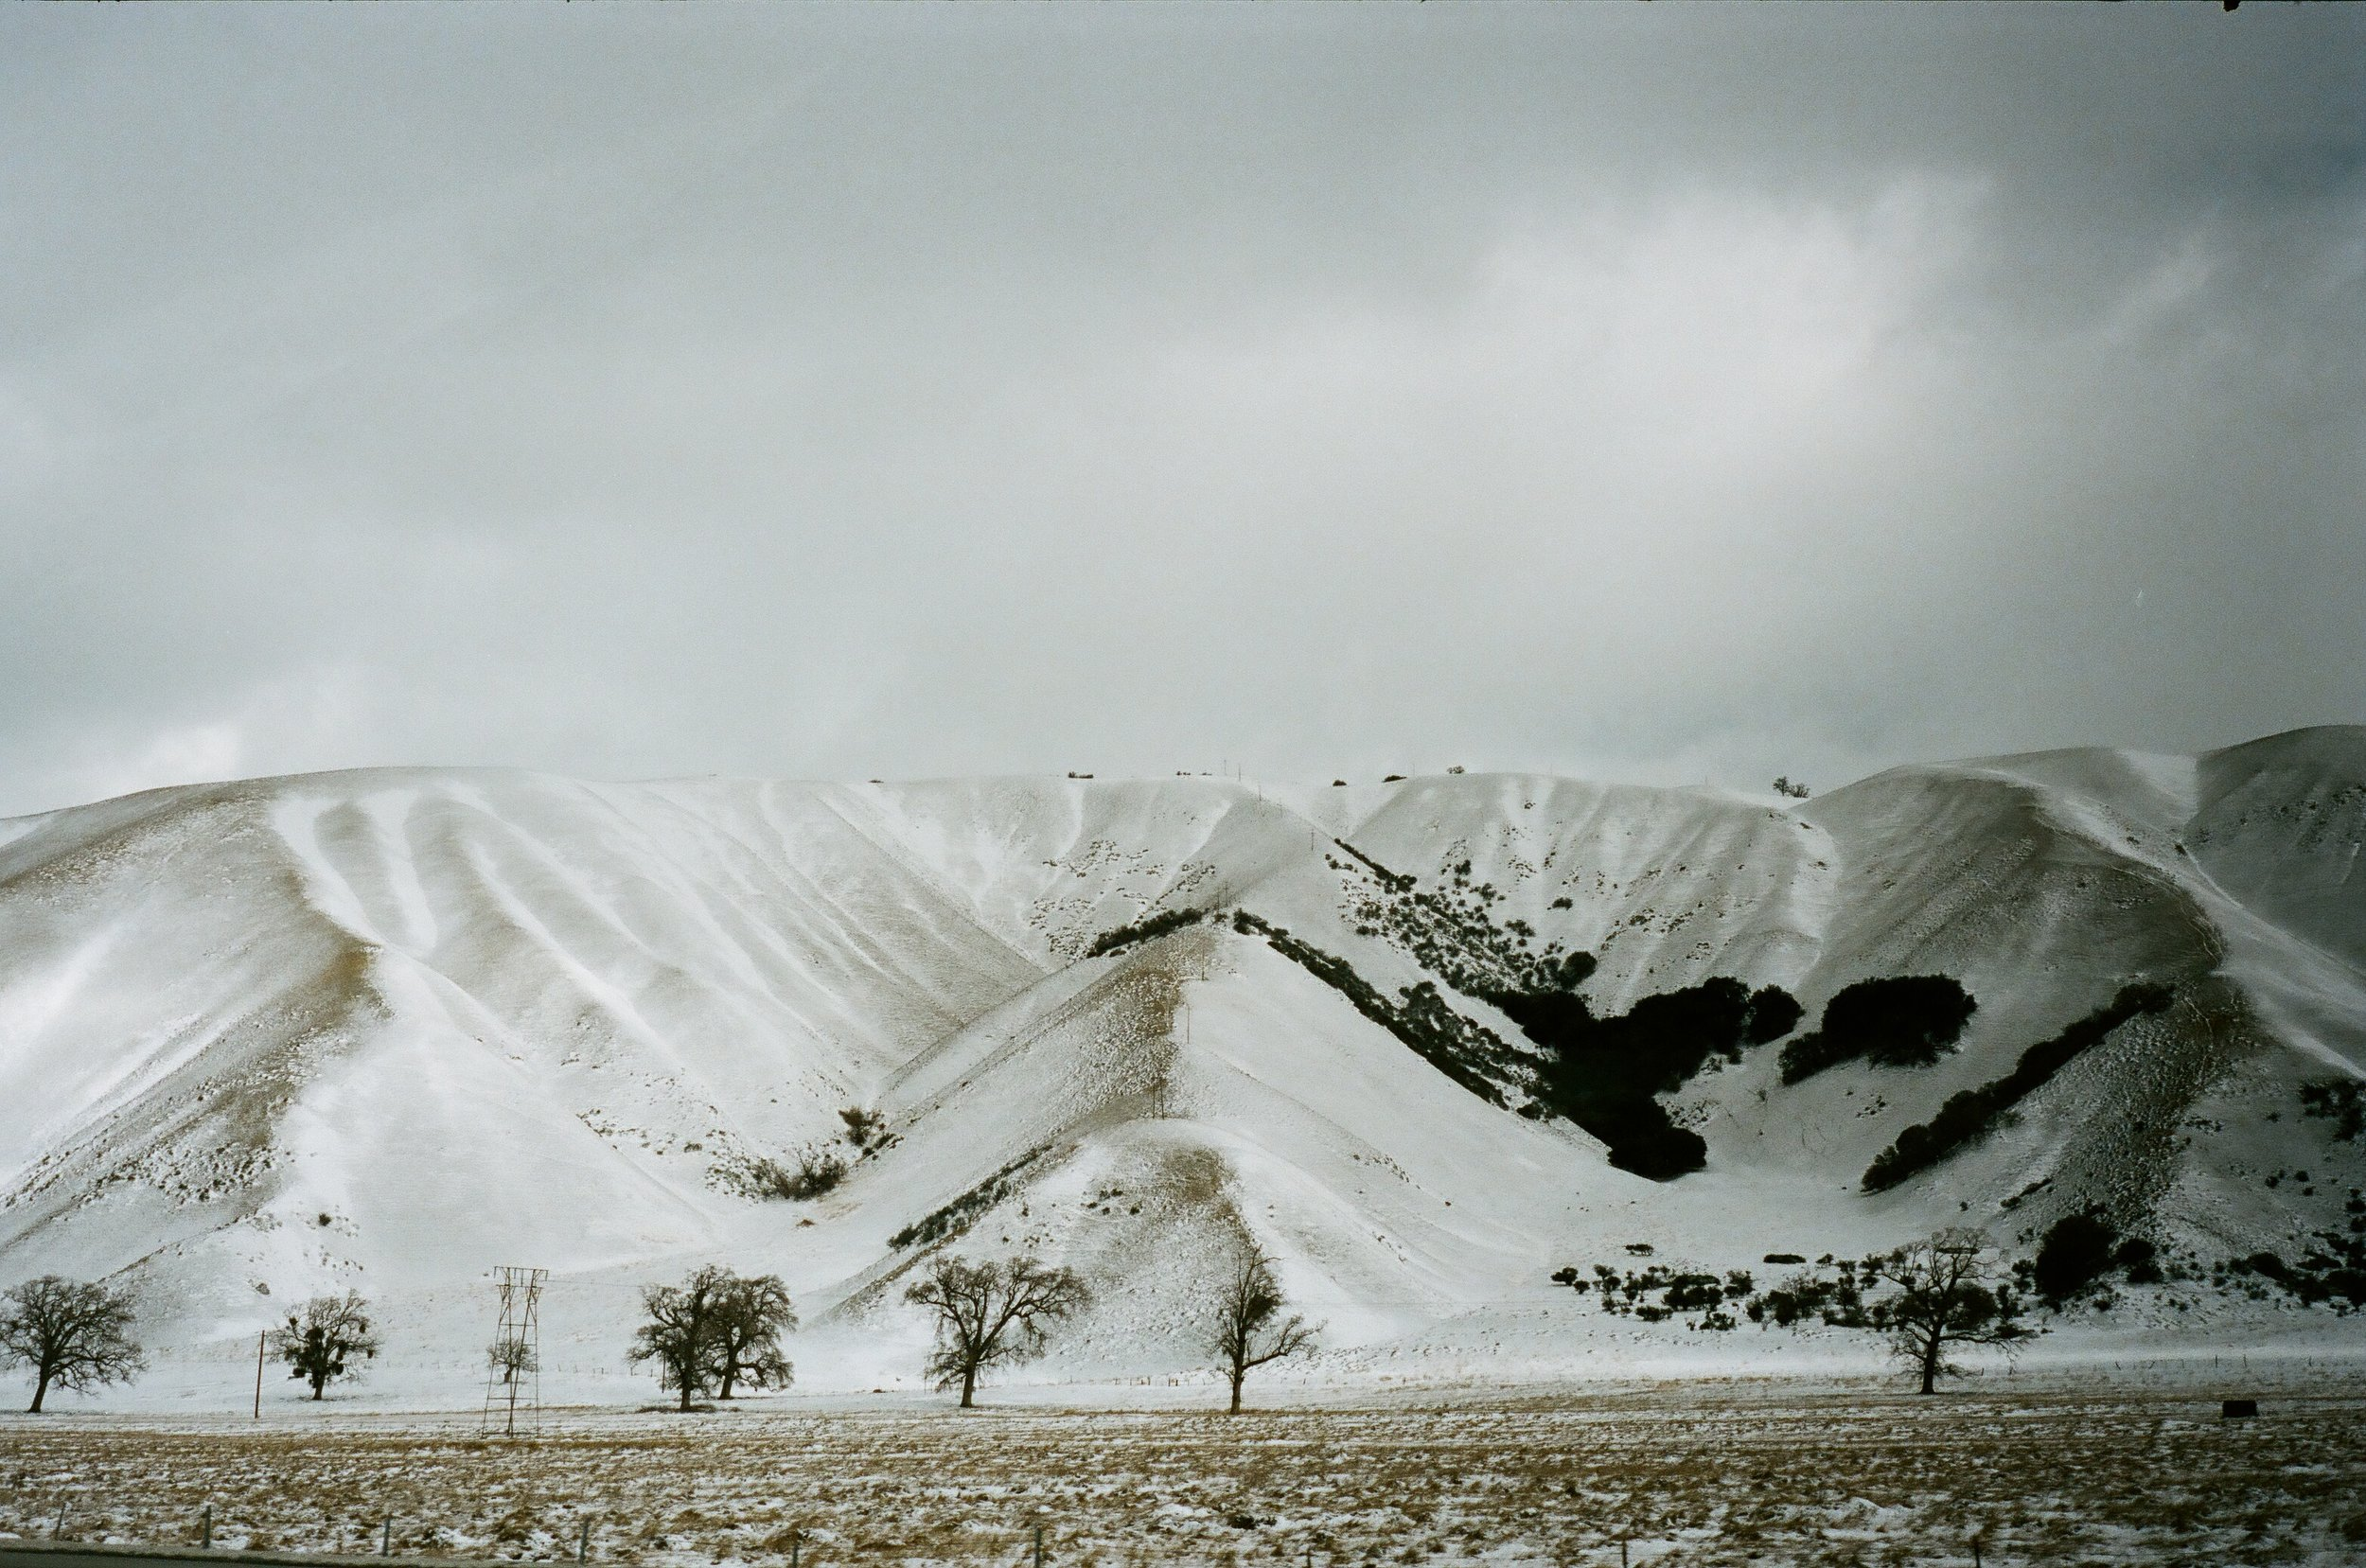 Tejon Pass, California